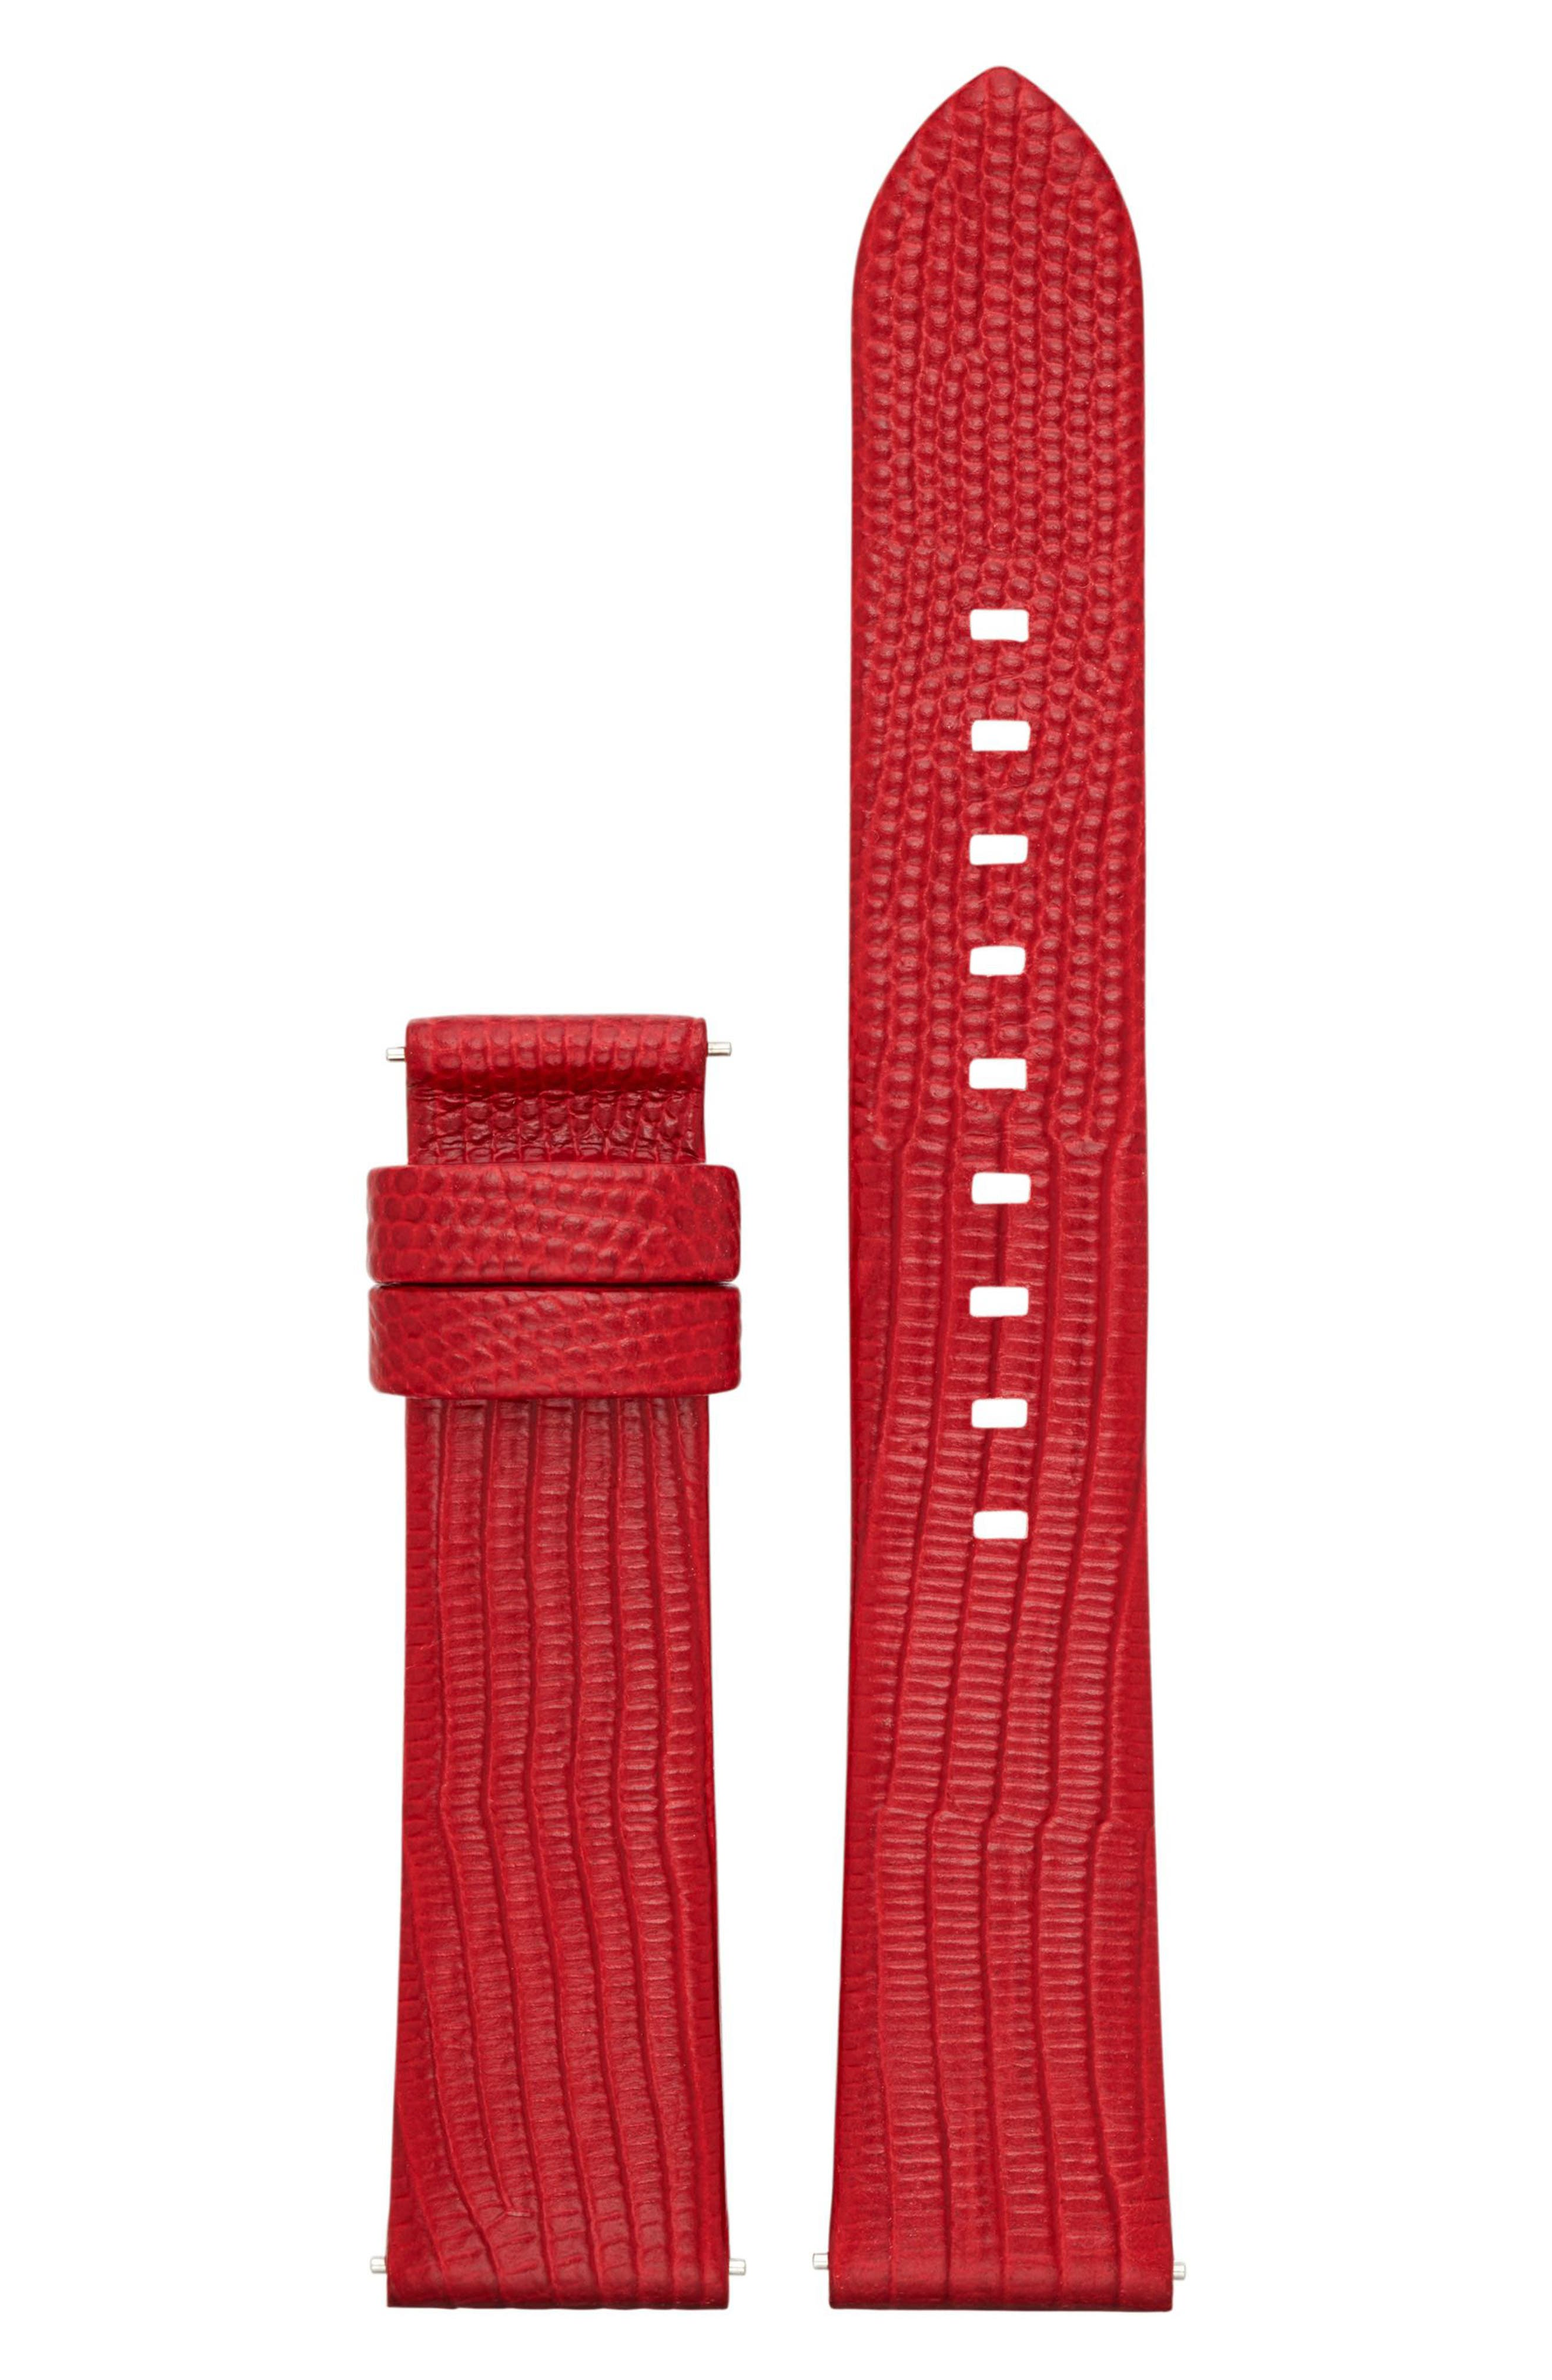 Michael Kors Access Sofie 18mm Leather Watch Strap